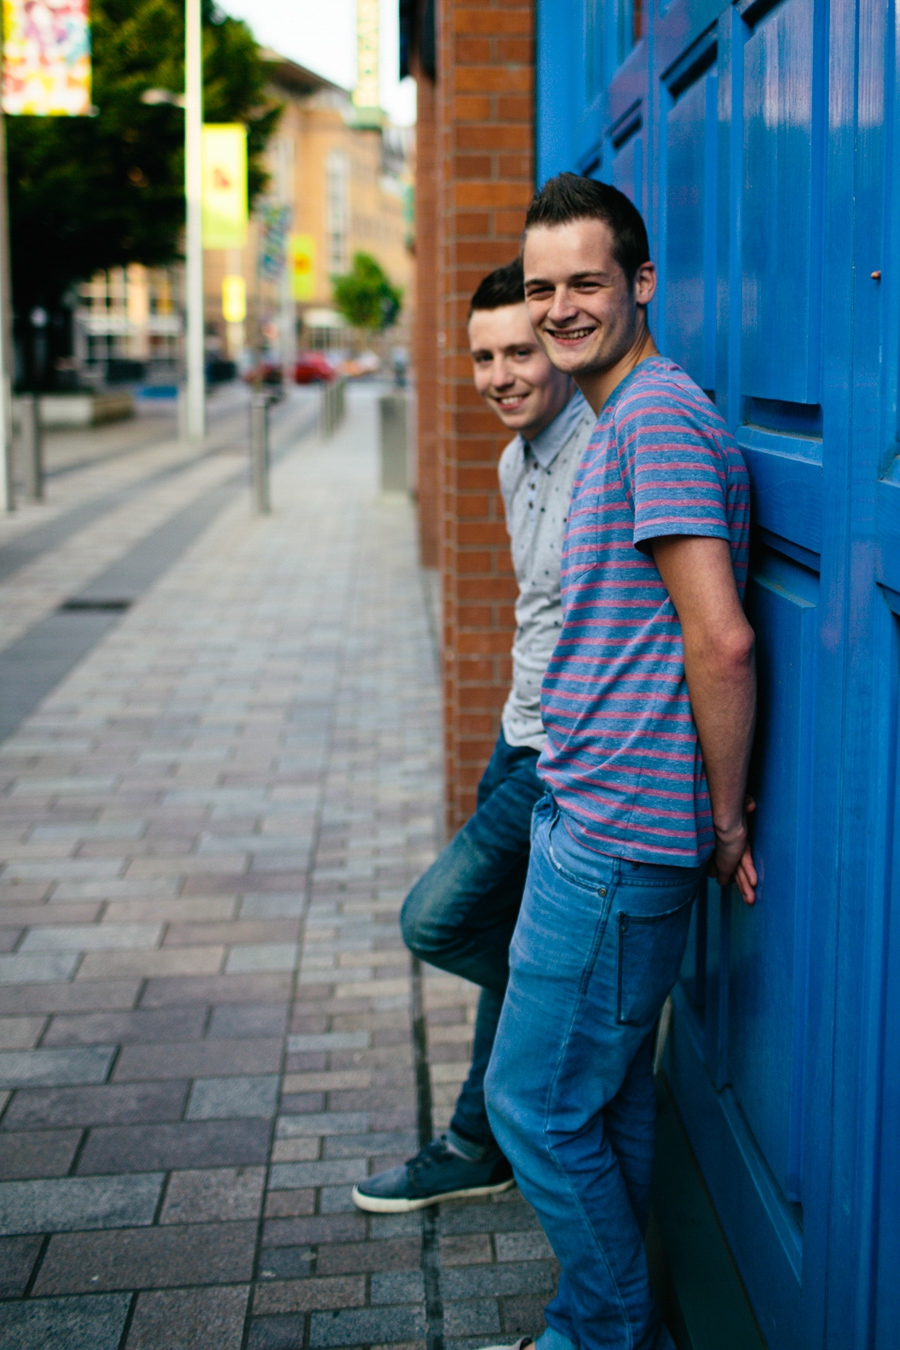 Wedding Photography Ireland, engagement photoshoot, Belfast, Equal Marriage Northern Ireland.